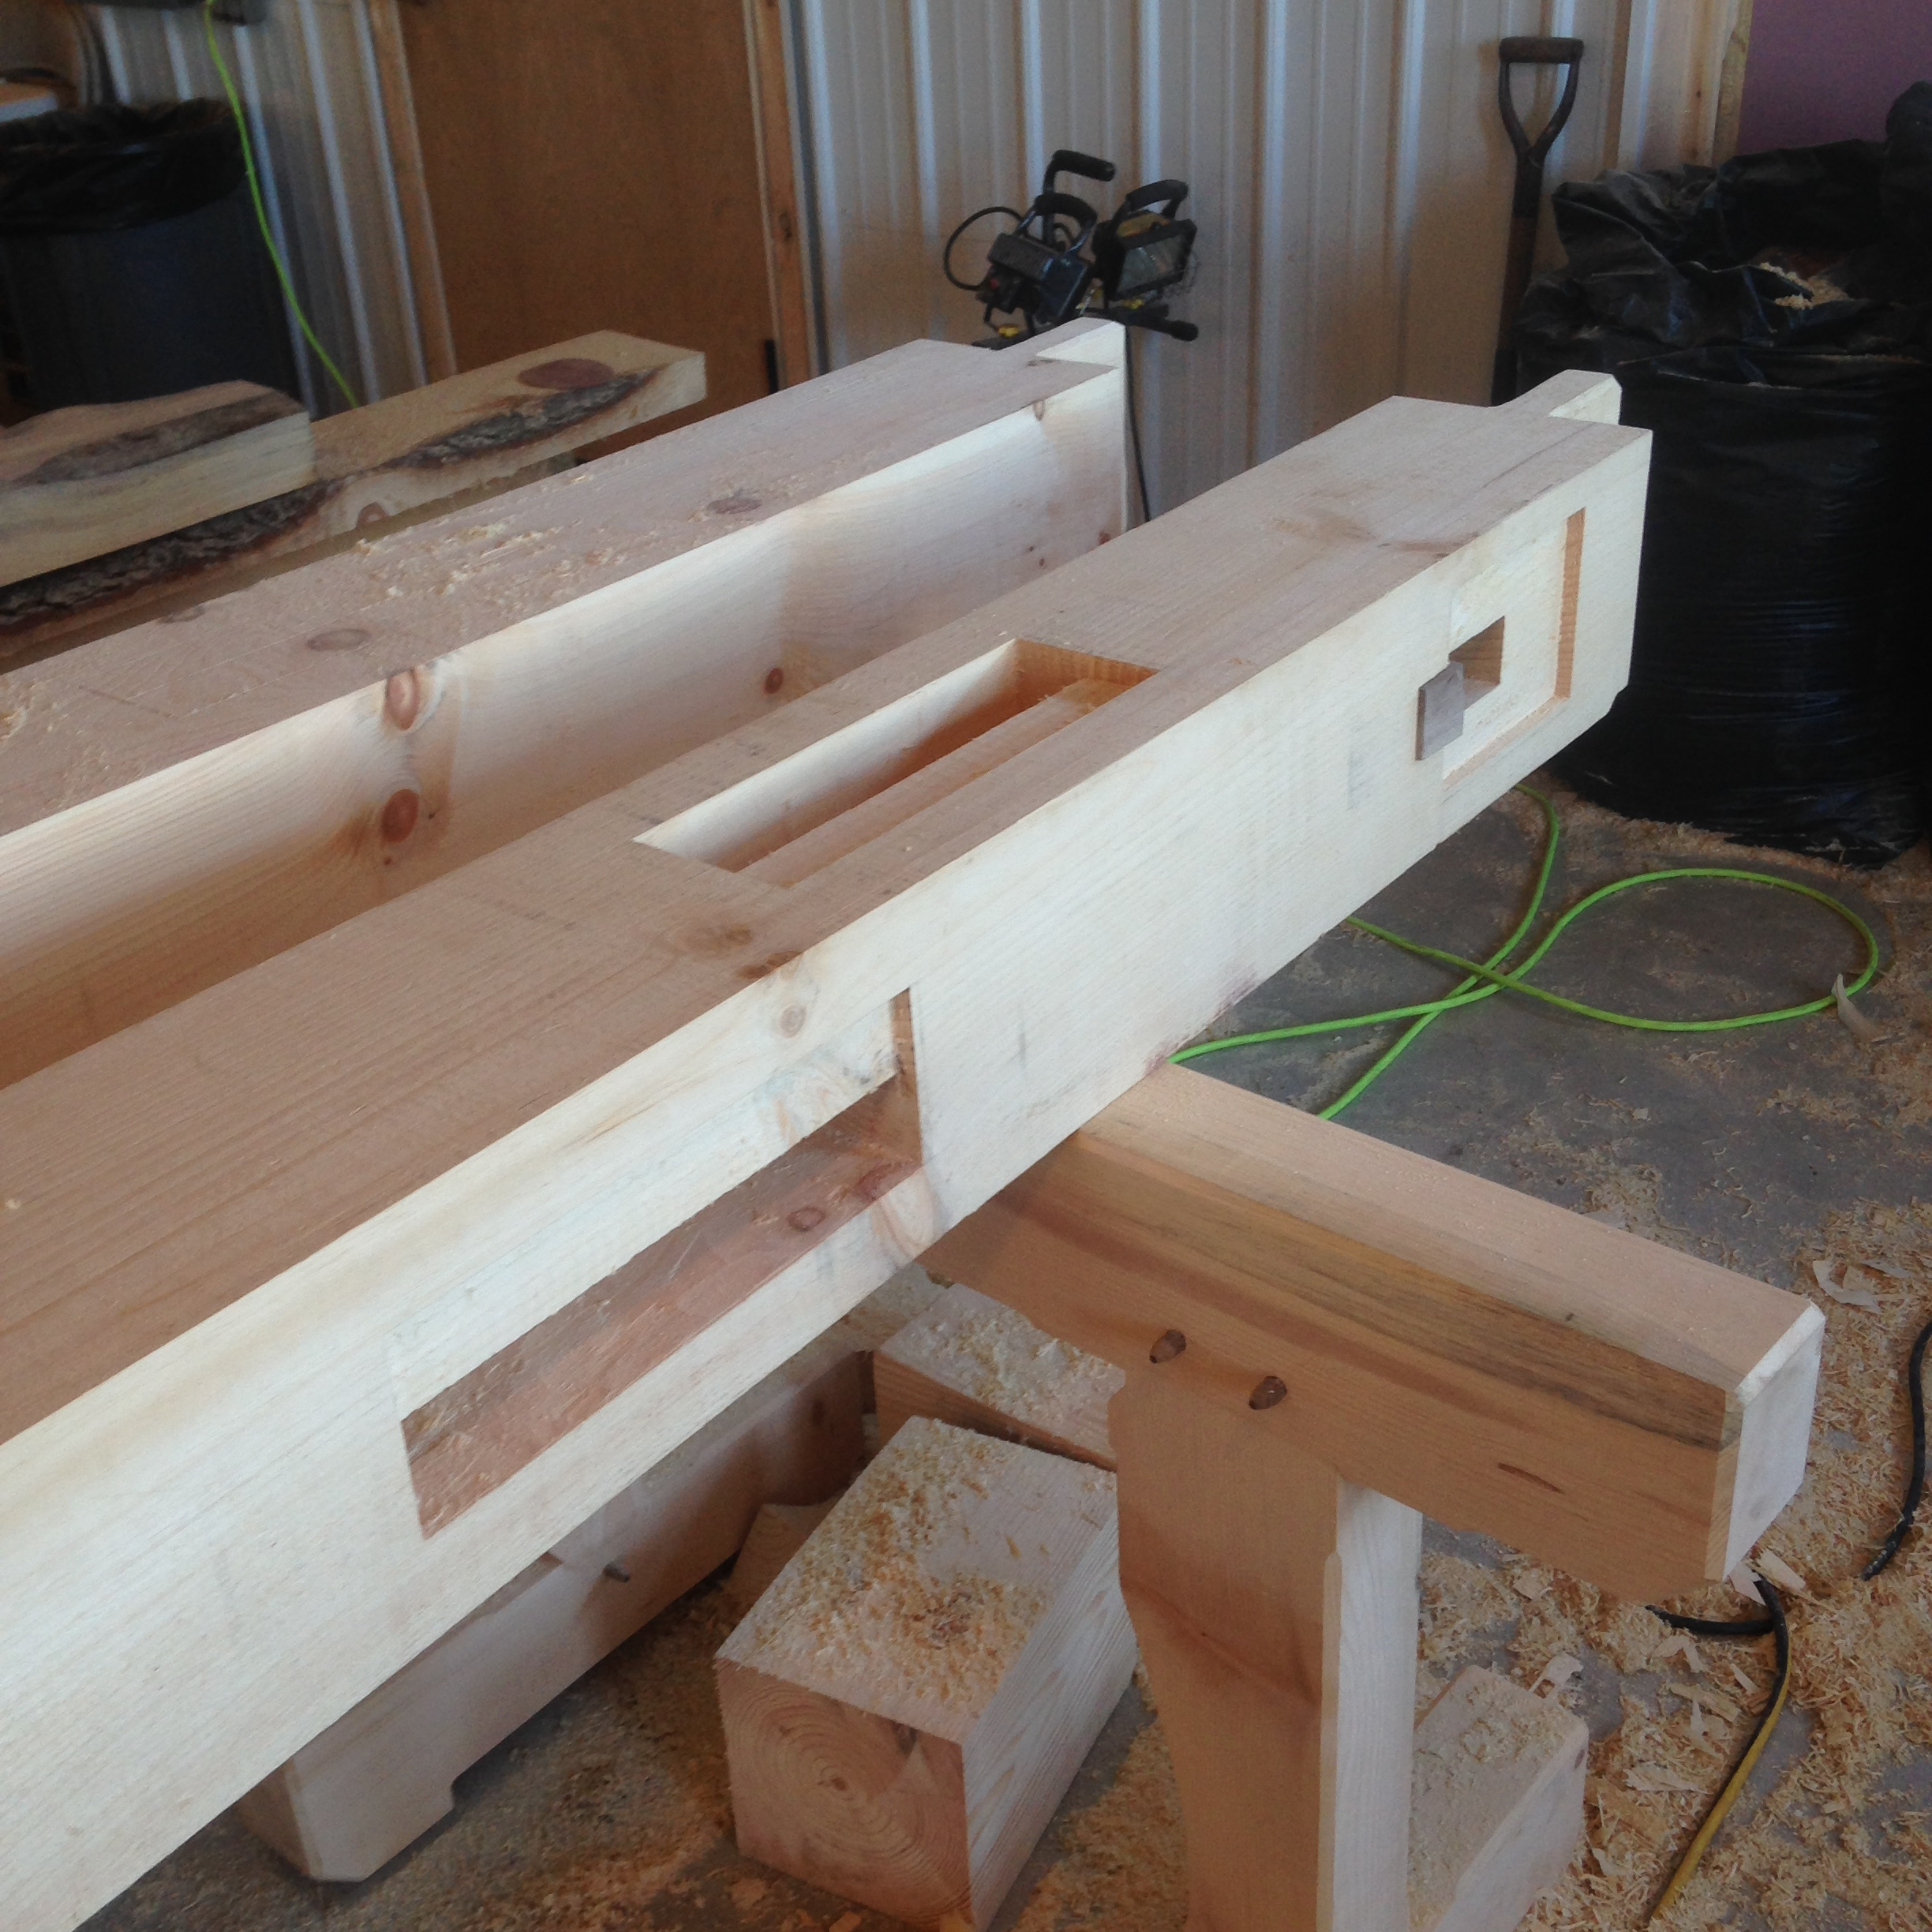 A look at the mortise and tenon joinery.